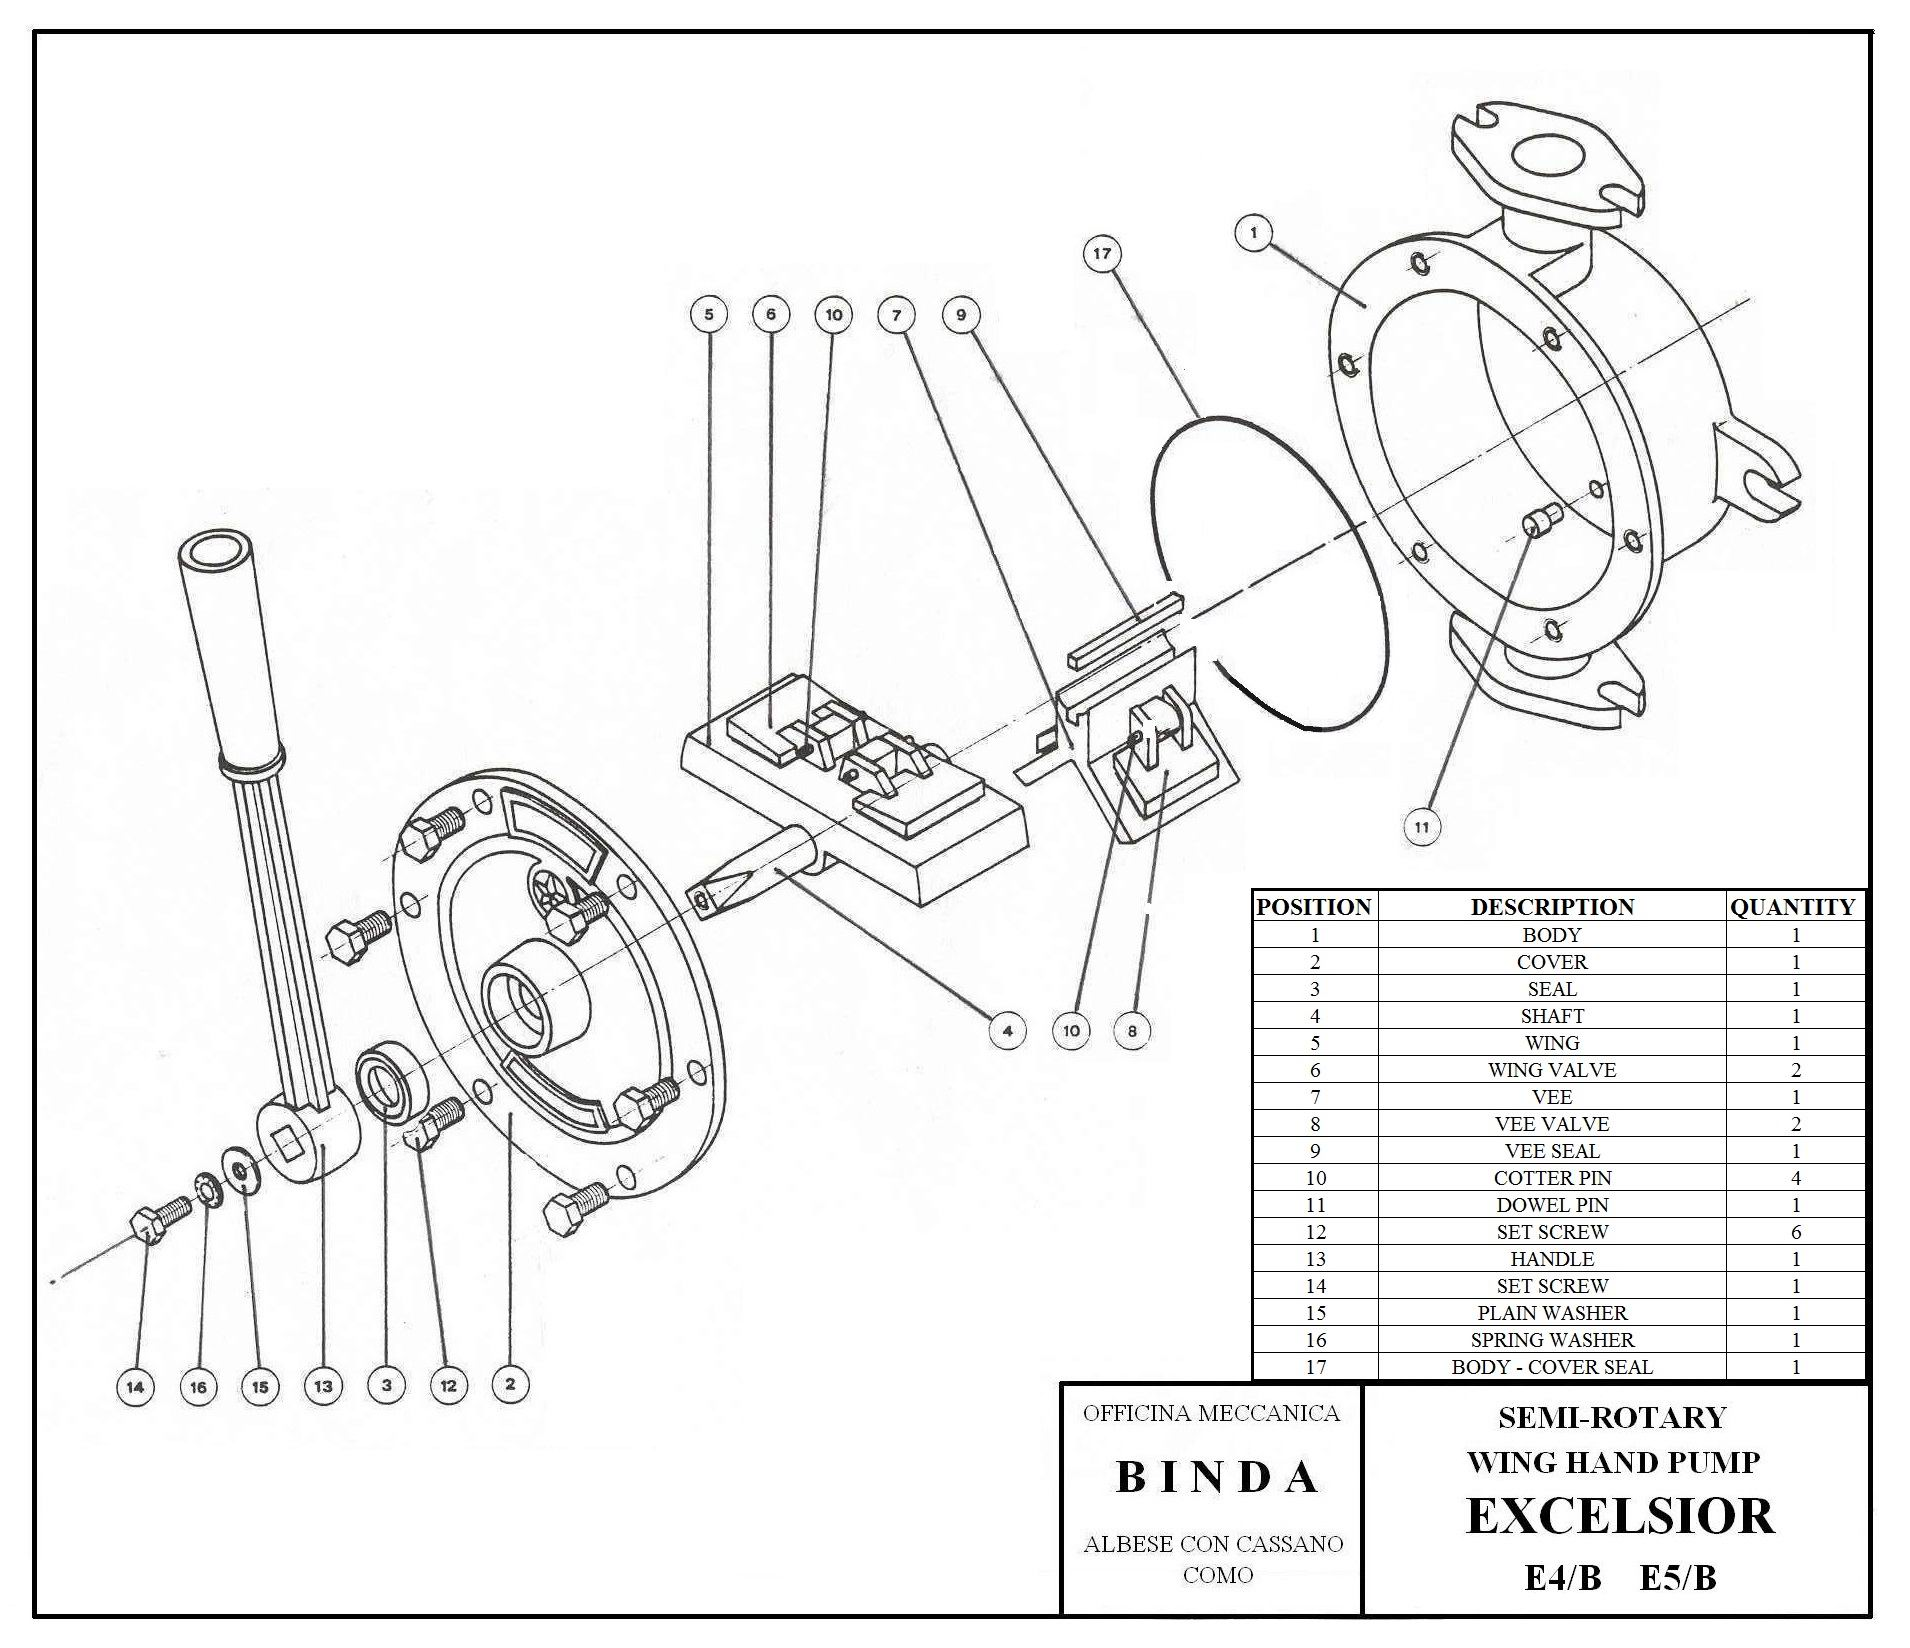 Binda Excelsior G Semi-Rotary Hand Pump & Manual Pump